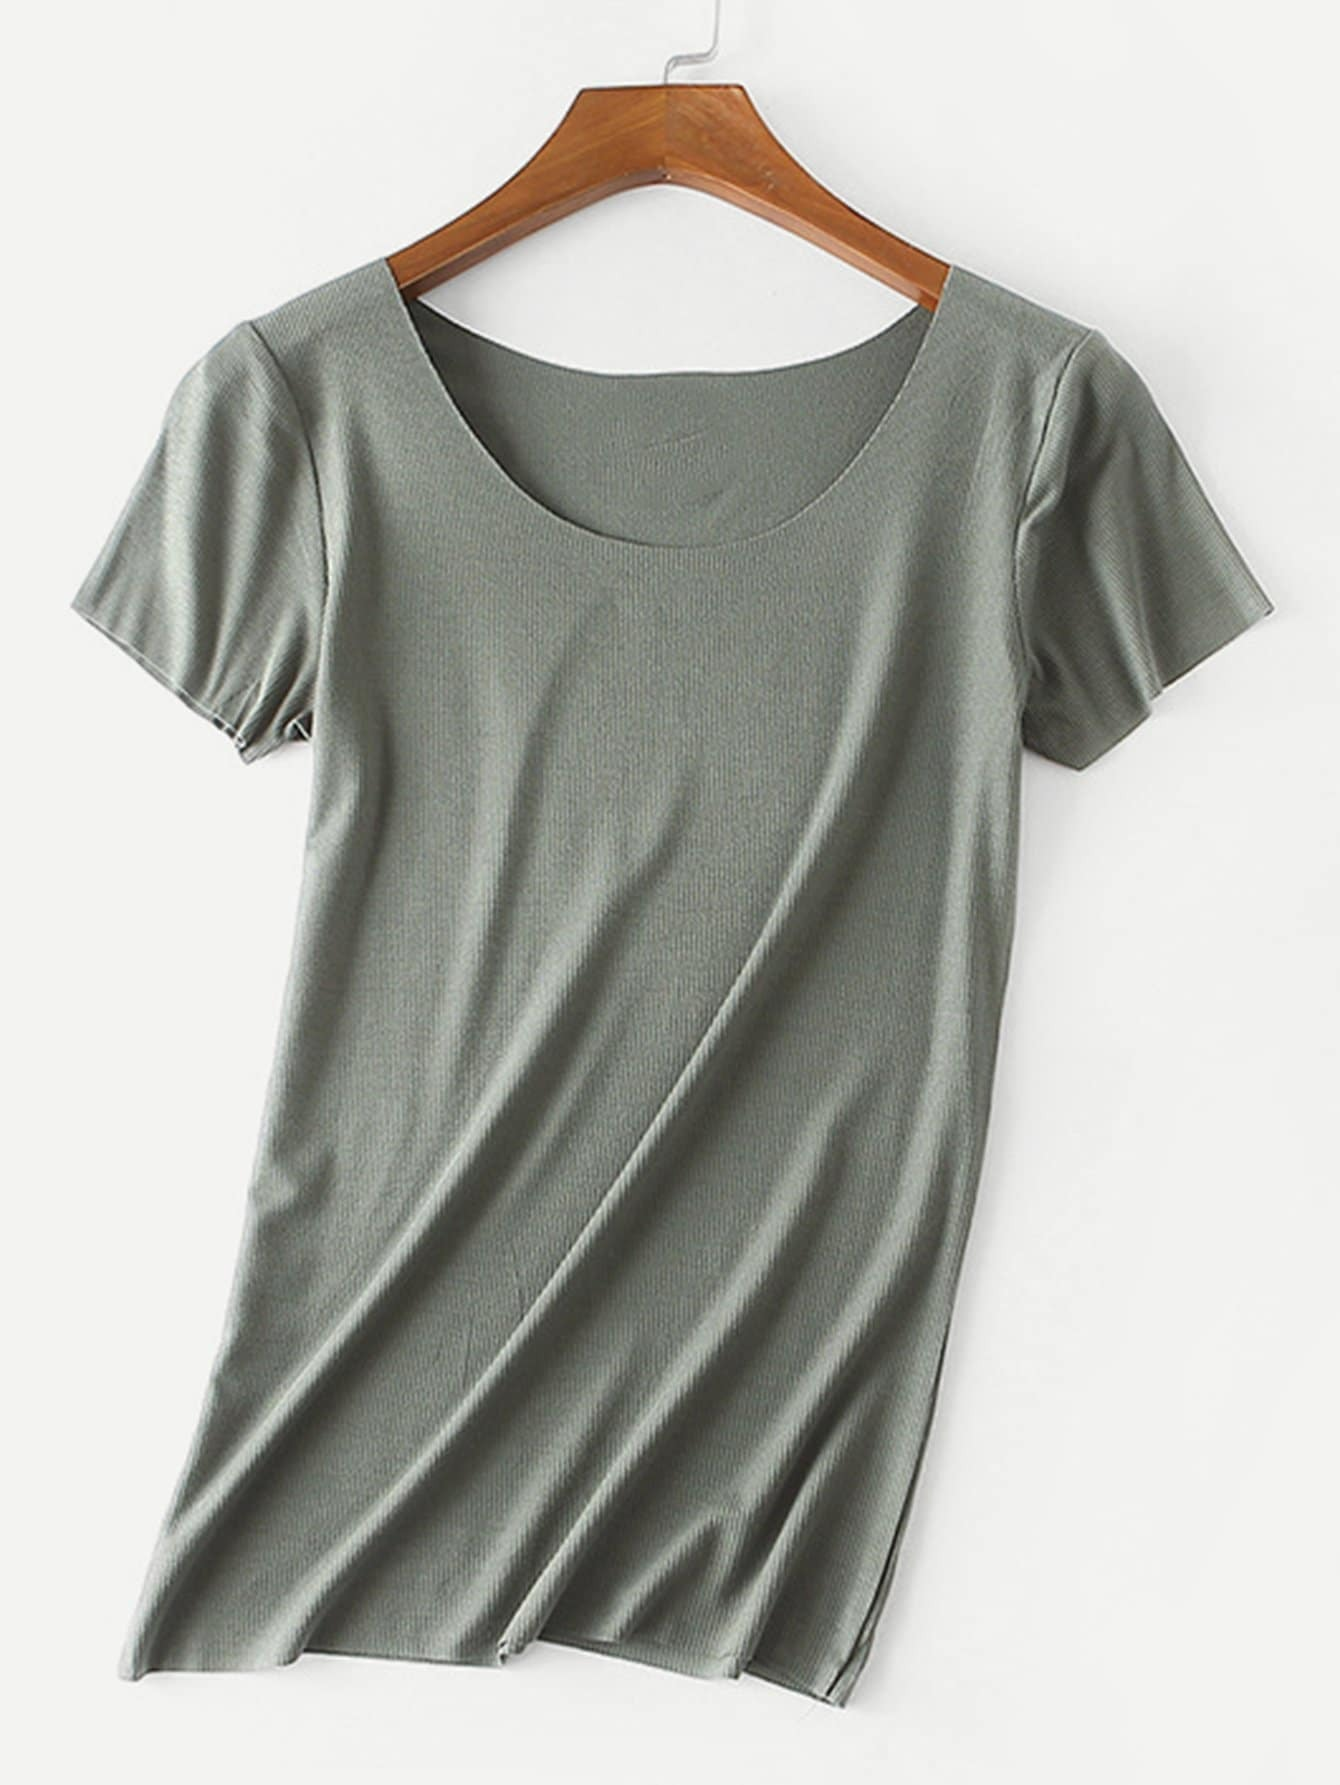 Solid Color Ribbed Tee night180329310